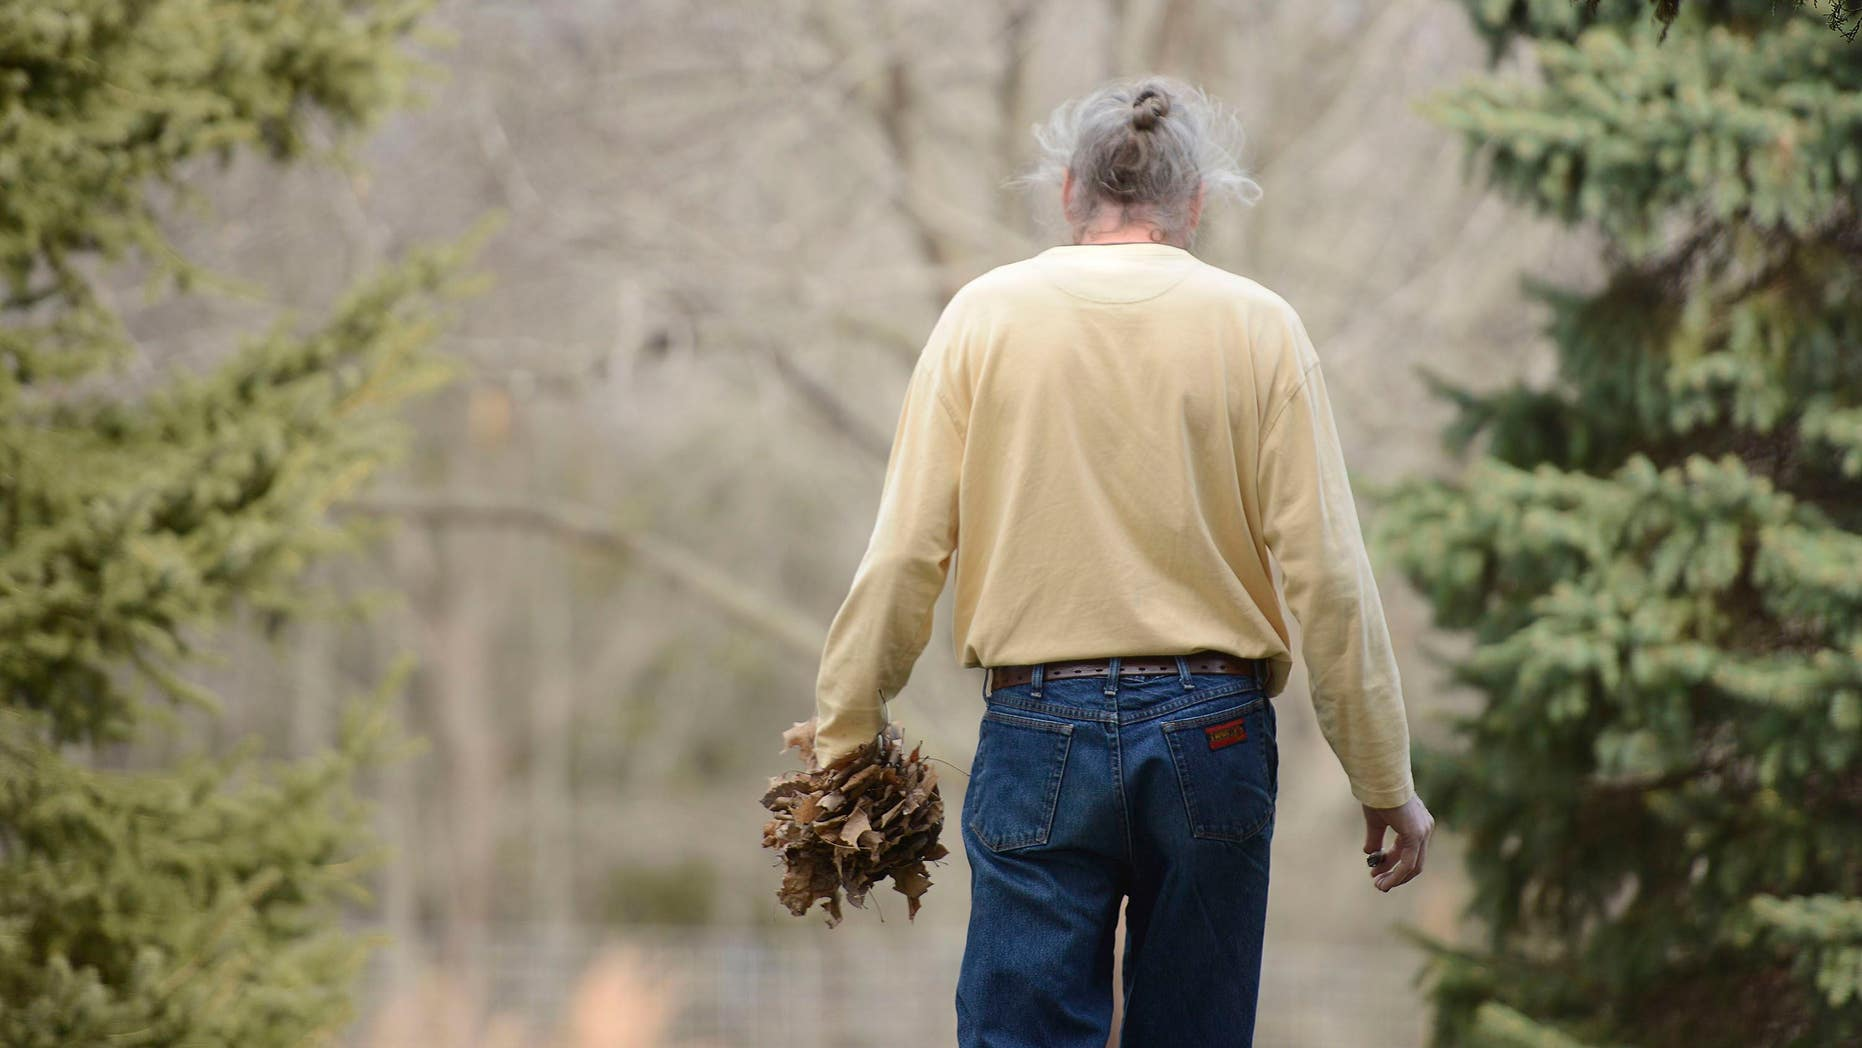 In this Thursday, Dec. 3, 2015, photo, Brian Cottle carries a handful of leaves around his house in Pierpont, Mo. Cottle spent four hours carrying leaves from one side of the yard to the other. This obsessive behavior is one of the symptoms of early onset Alzheimer's. (Kayla Wolf/Missourian via AP)